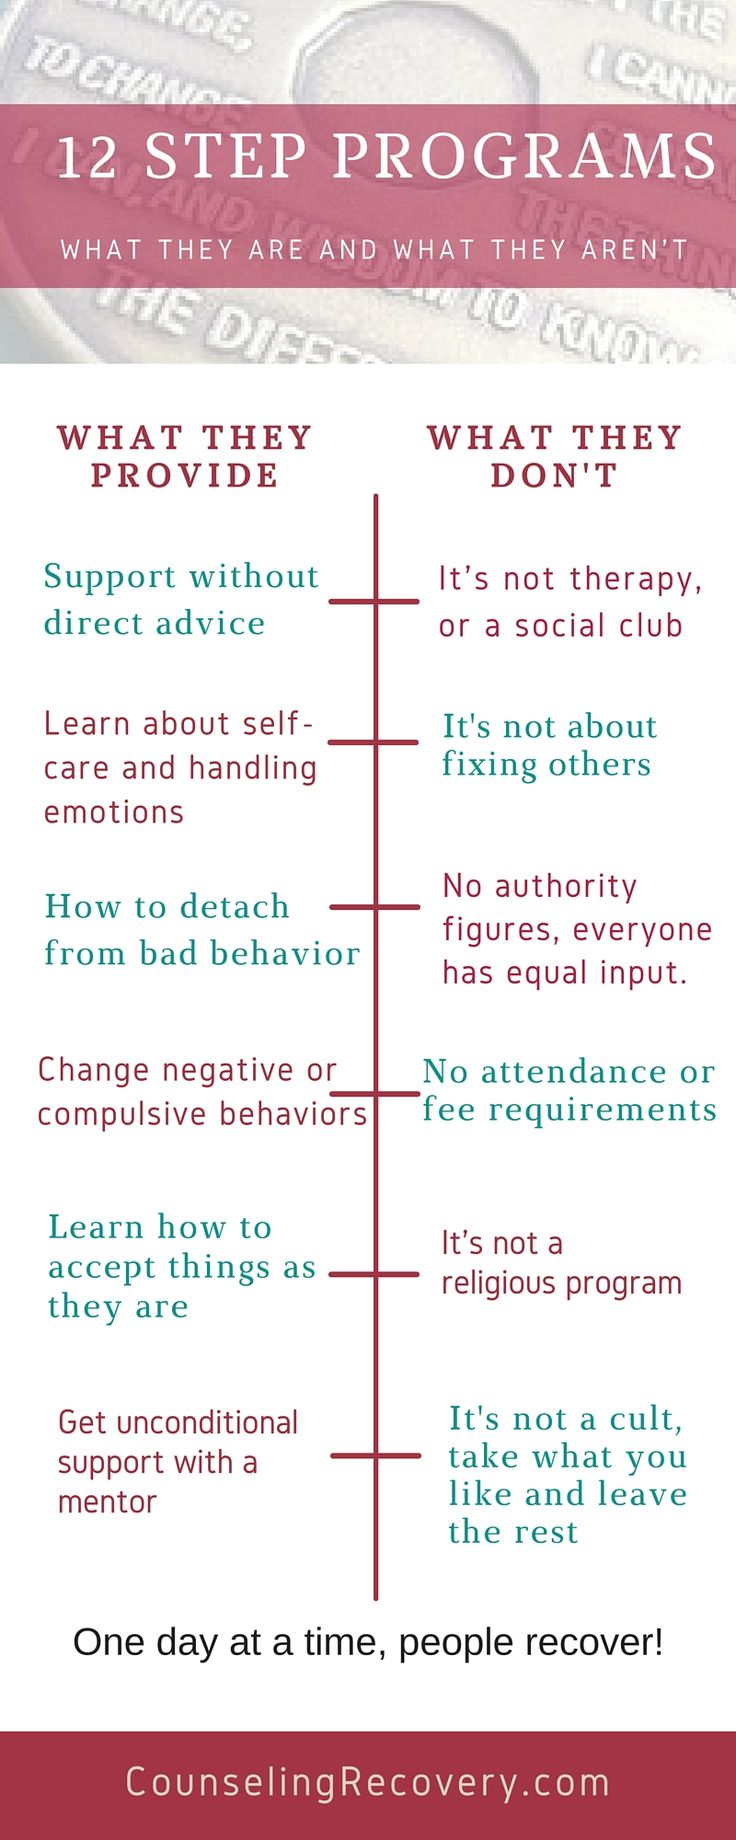 12 step programs have been largely misunderstood. Here you'll see what they are and what they are not. For those in recovery from addiction and codependency, they are lifesavers.